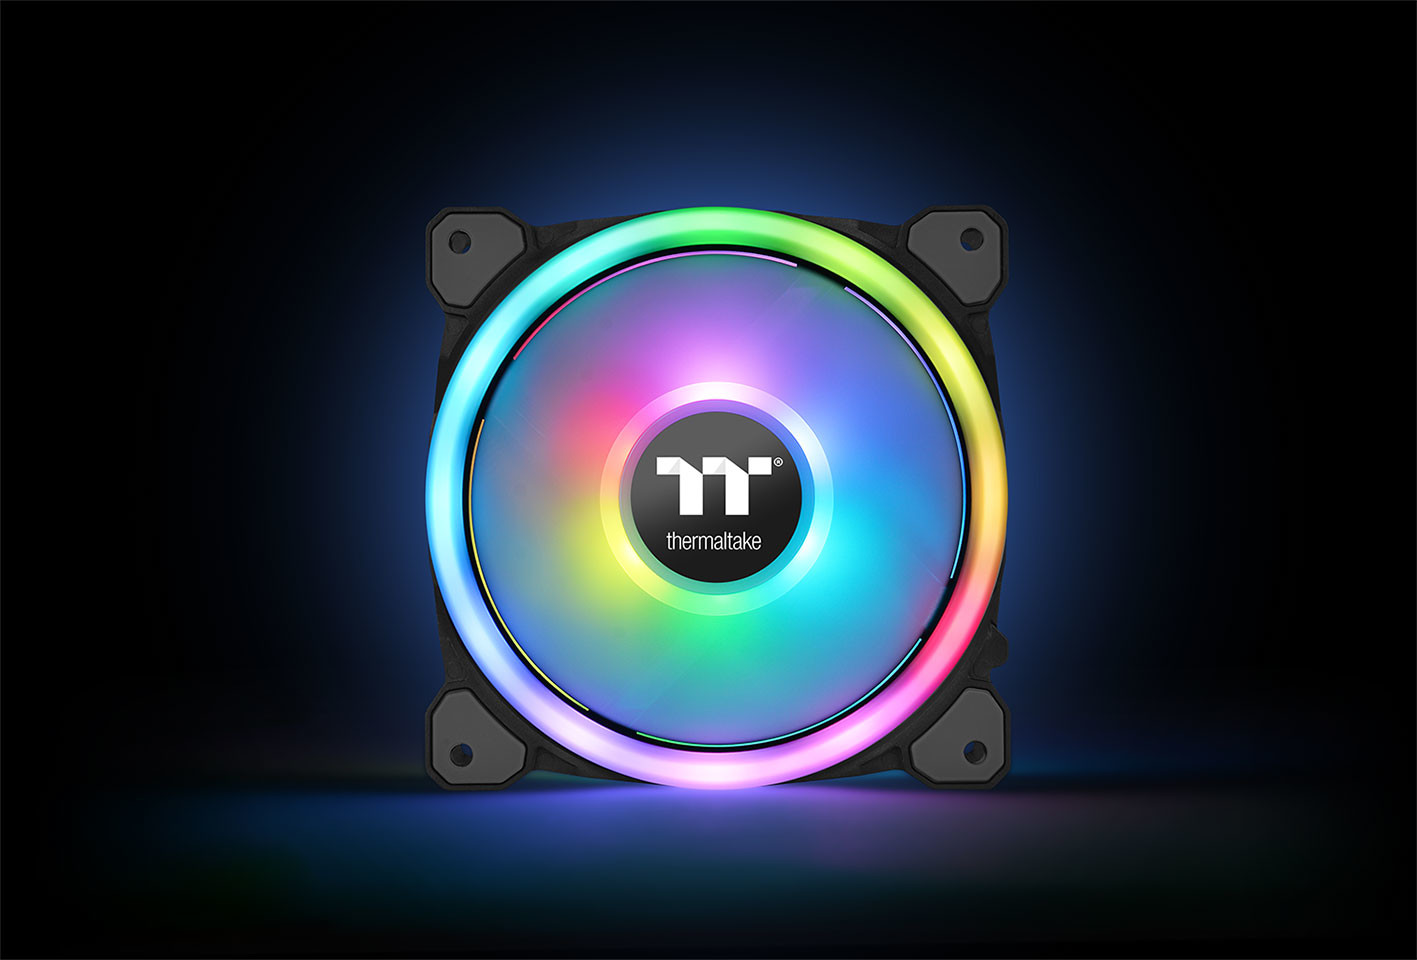 Thermaltake cooling systems will receive Alexa voice control